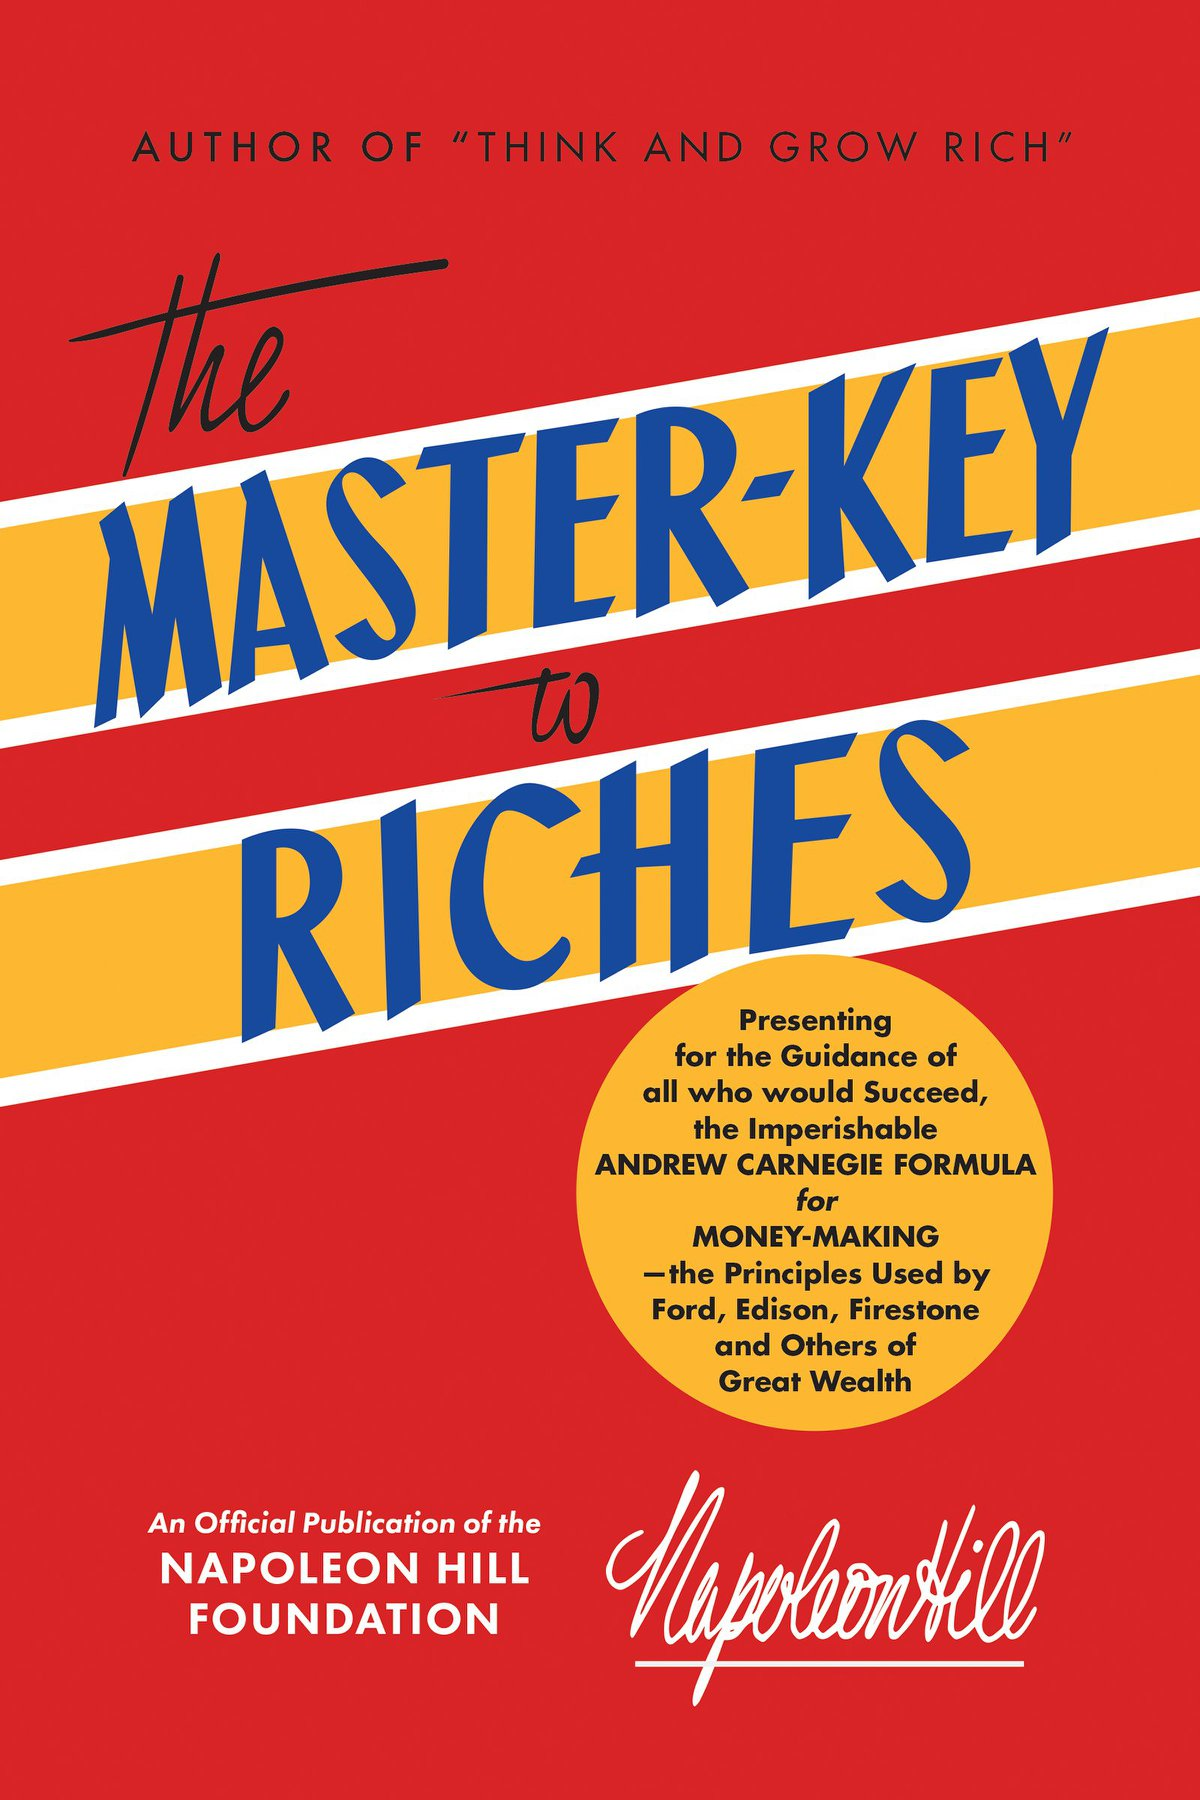 The Master-Key to Riches (pre-order before 7/17